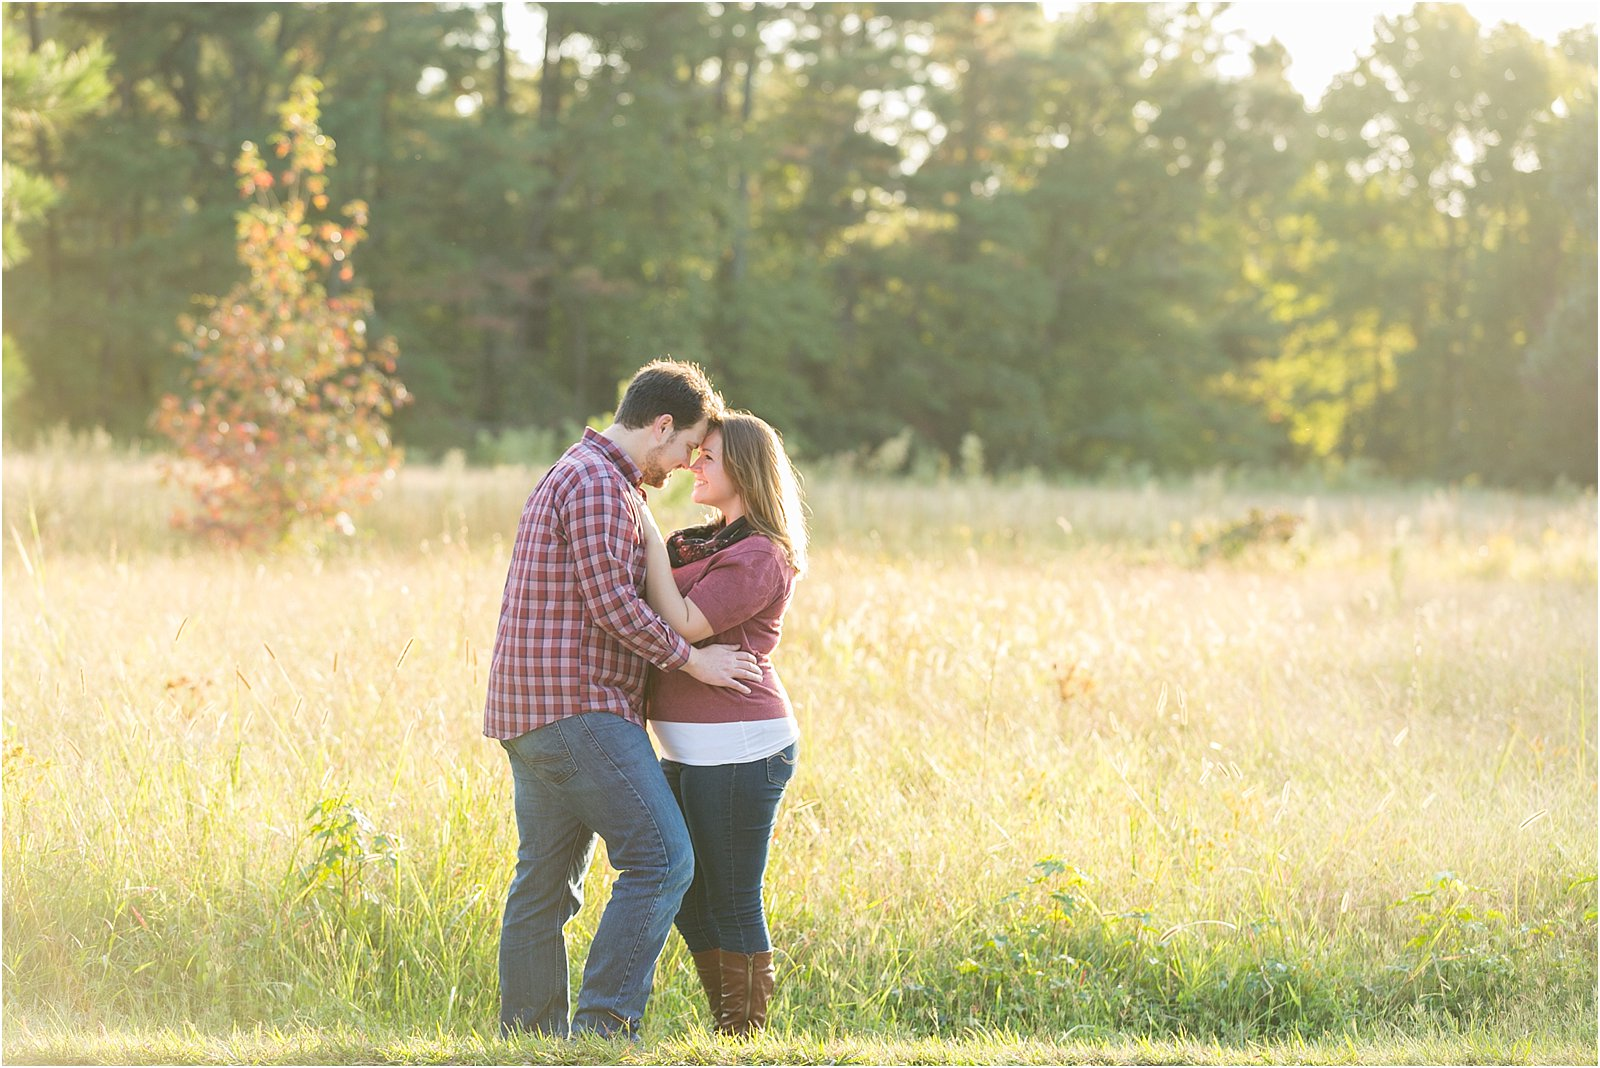 jessica_ryan_photography_pumpkin_patch_engagement_portraits_fall_october_engagements_virginia_beach_chesapeake_0294